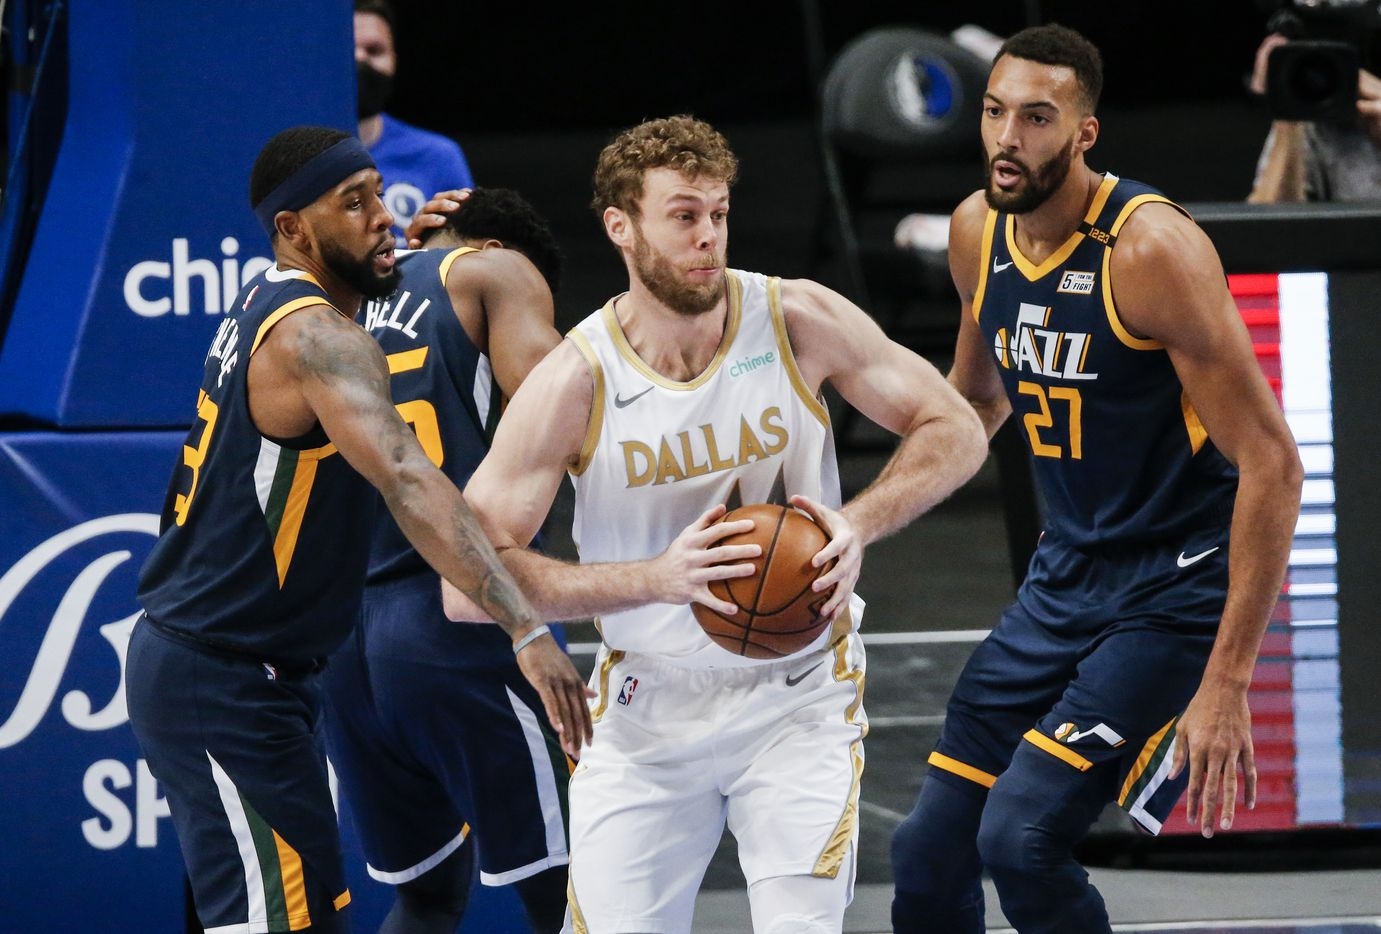 Dallas Mavericks forward Nicolo Melli (44) looks to pass as Utah Jazz forwards Royce O'Neale, left, and Rudy Gobert (27) defend during the first half of an NBA basketball game in Dallas, Monday, April 5, 2021. (Brandon Wade/Special Contributor)